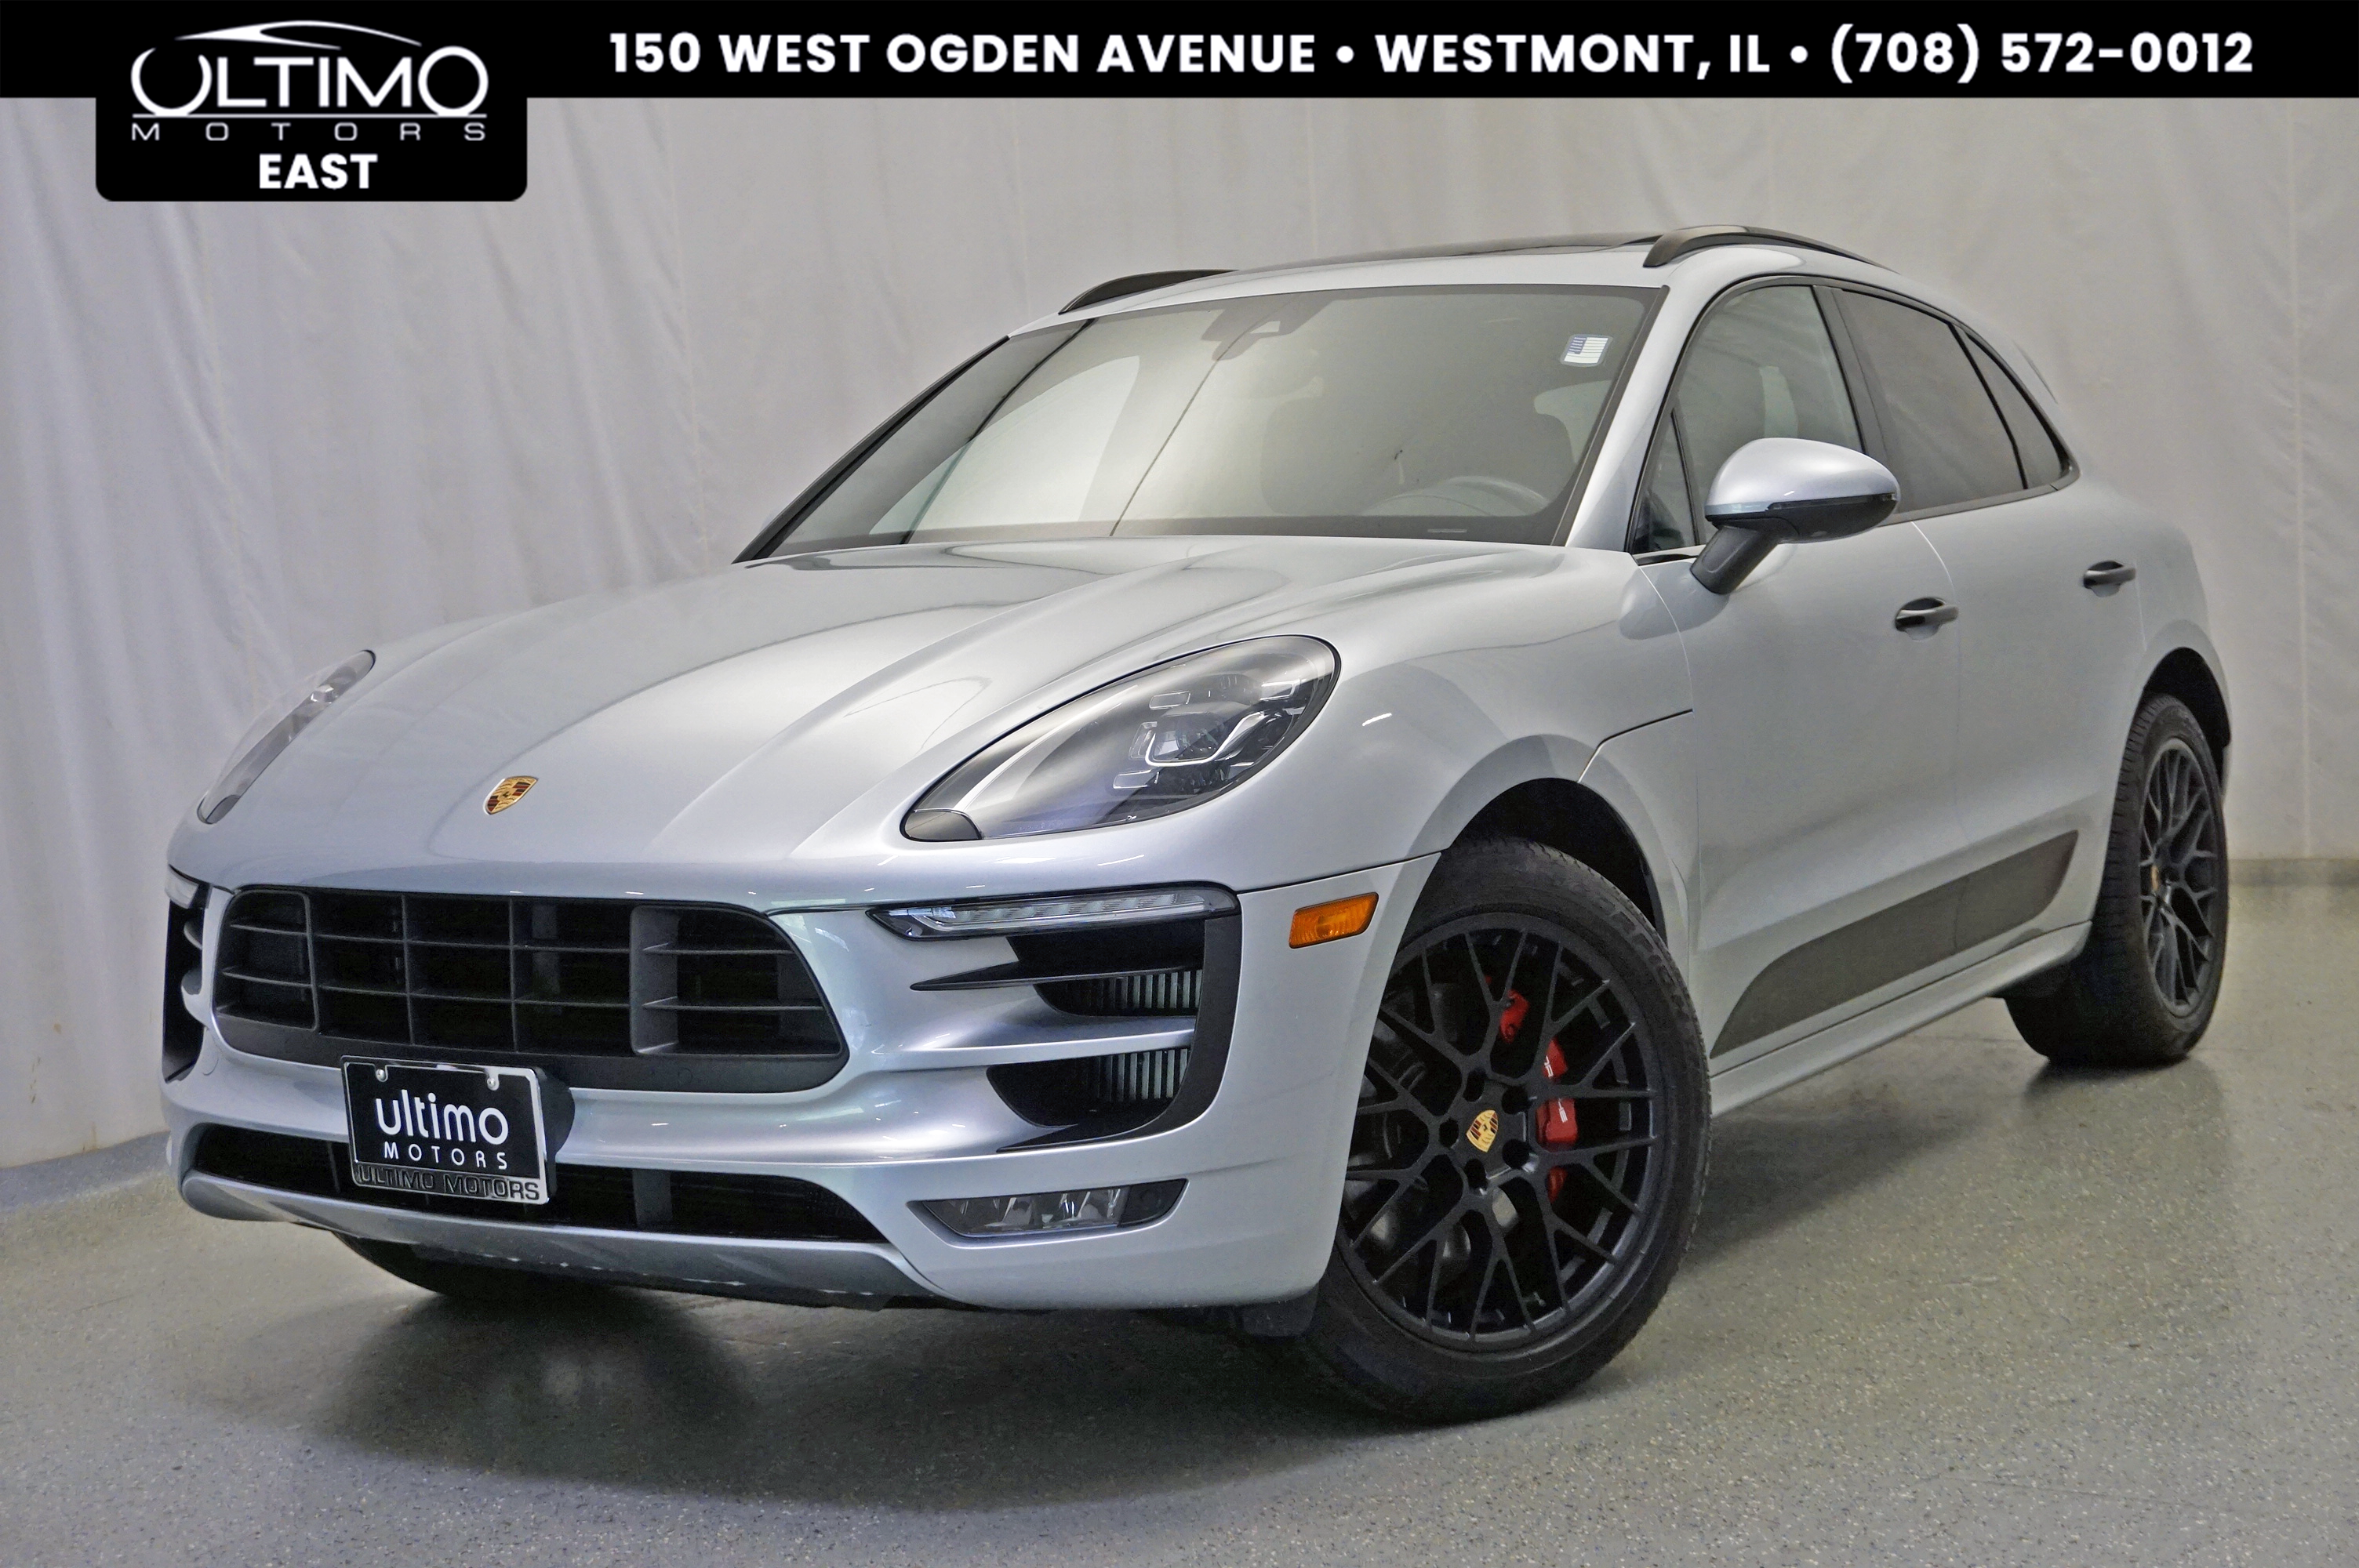 pre owned 2017 porsche macan gts 81 675 msrp suv in warrenville